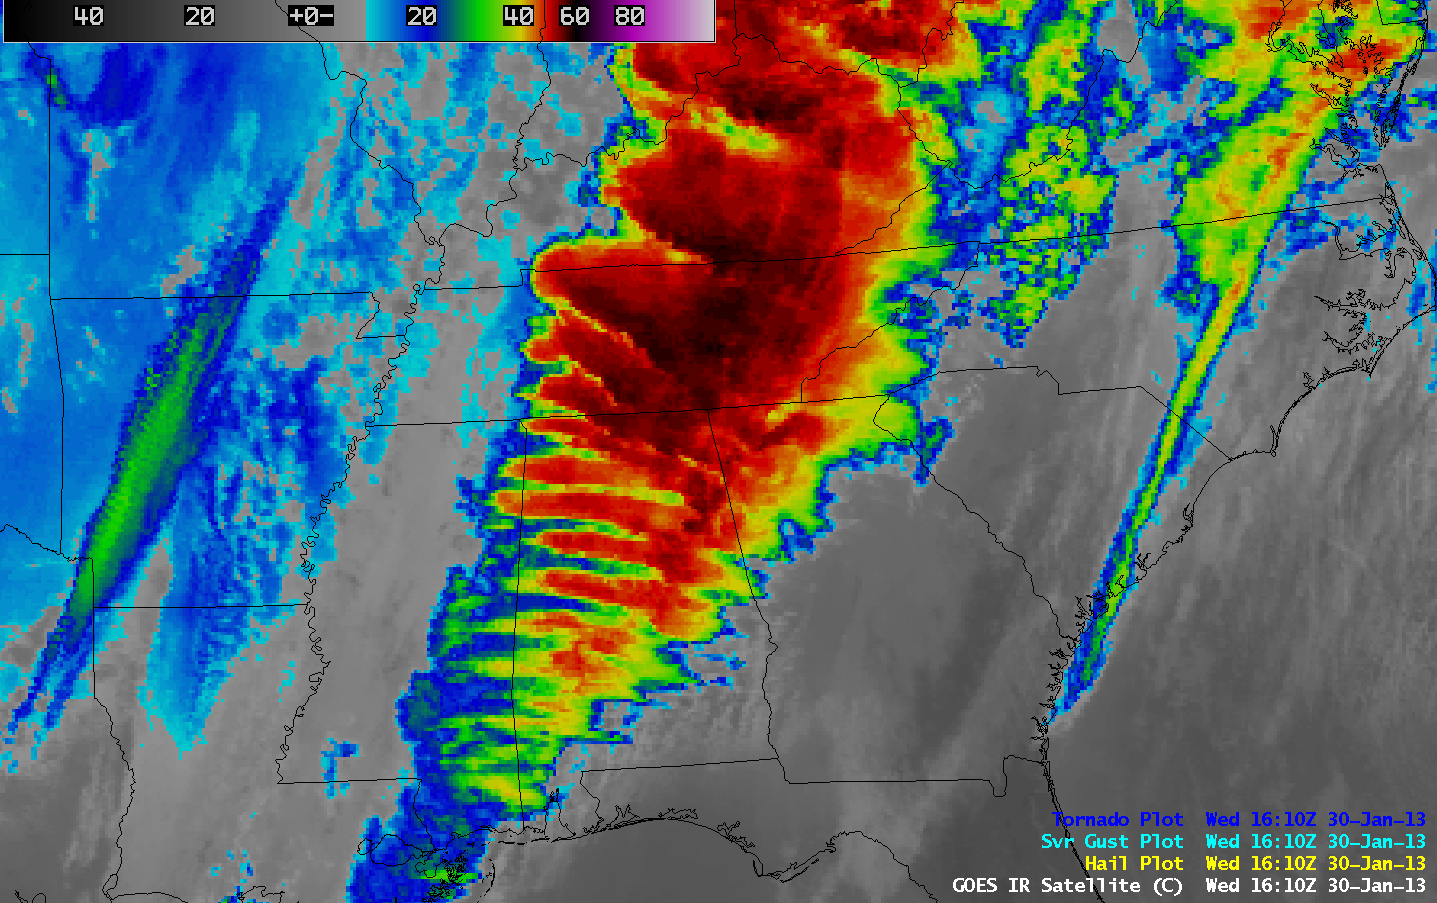 GOES-13 10.7 µm IR channel images (click image to play animation)